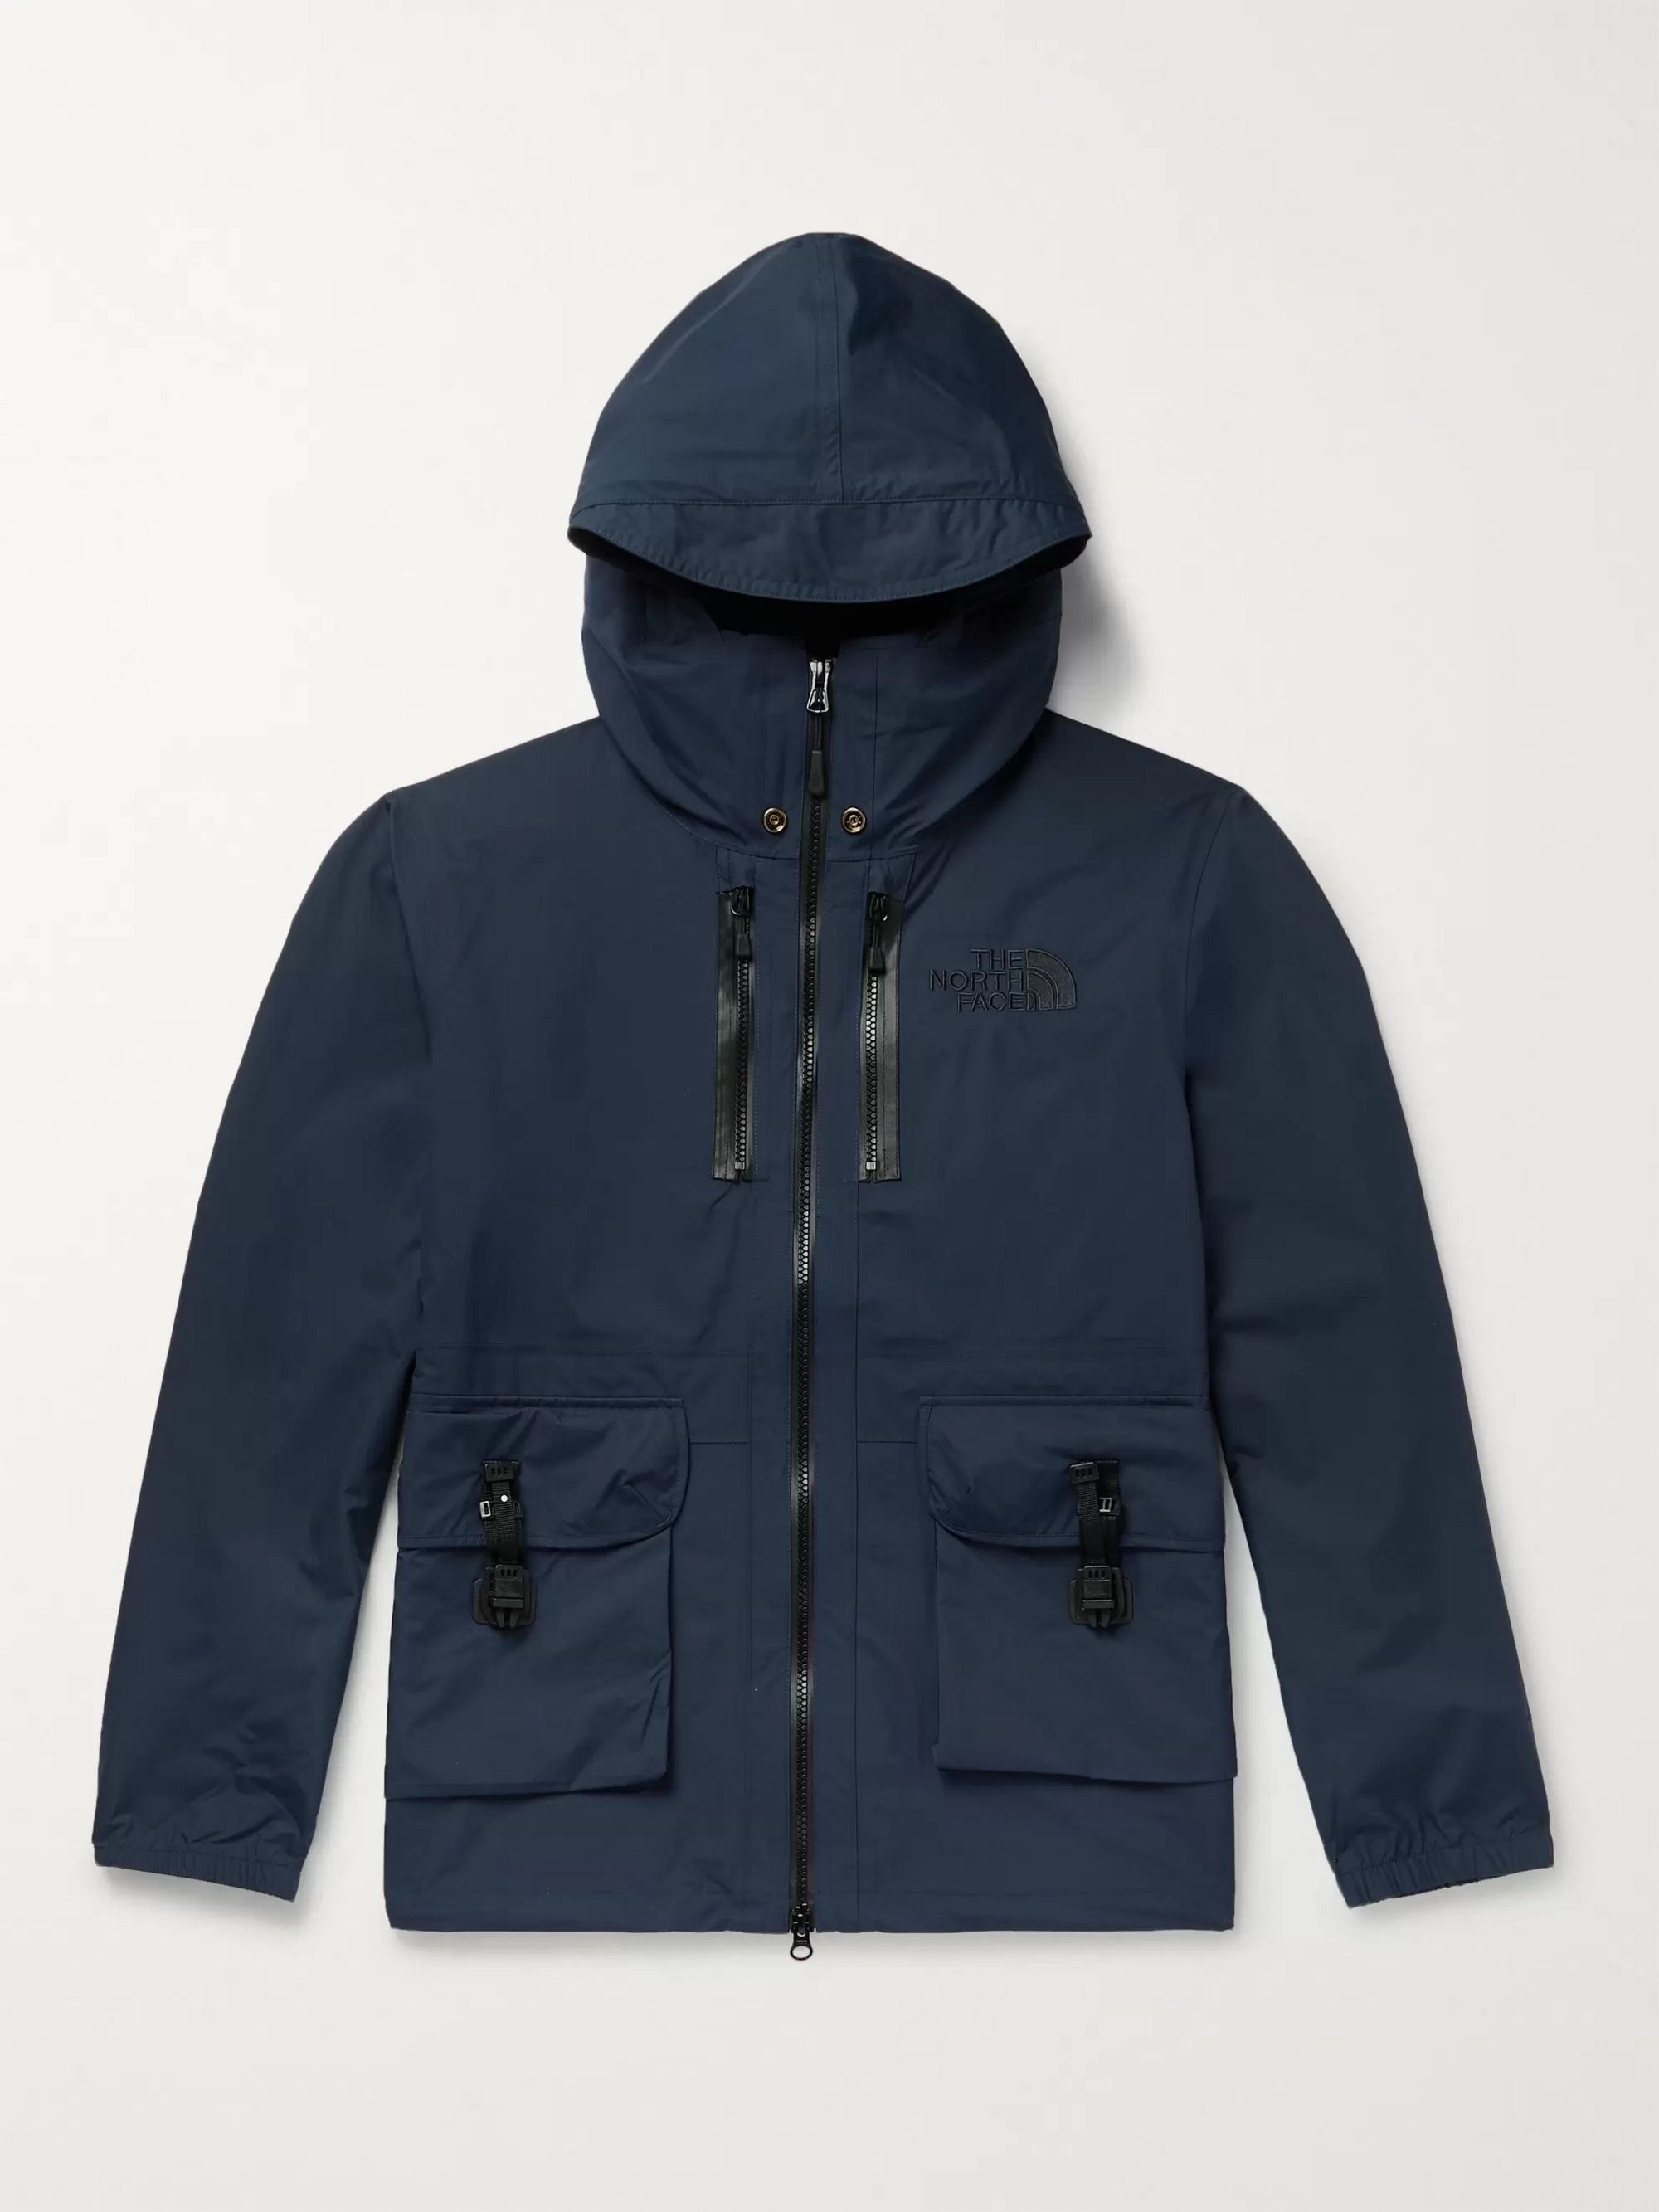 The North Face Black Series DryVent Hooded Jacket